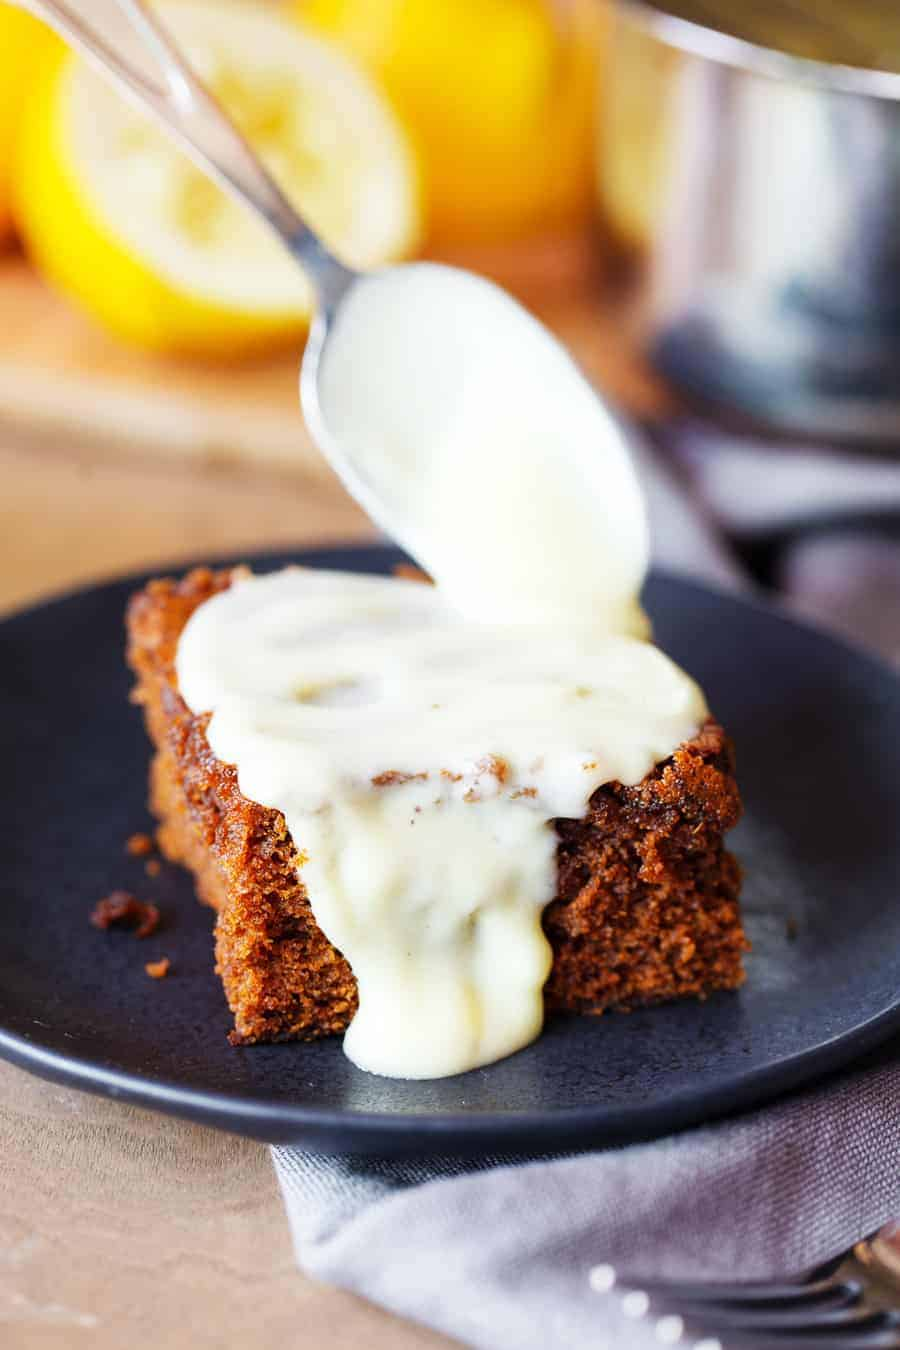 What Can I Substitute Eggs For In A Cake Recipe